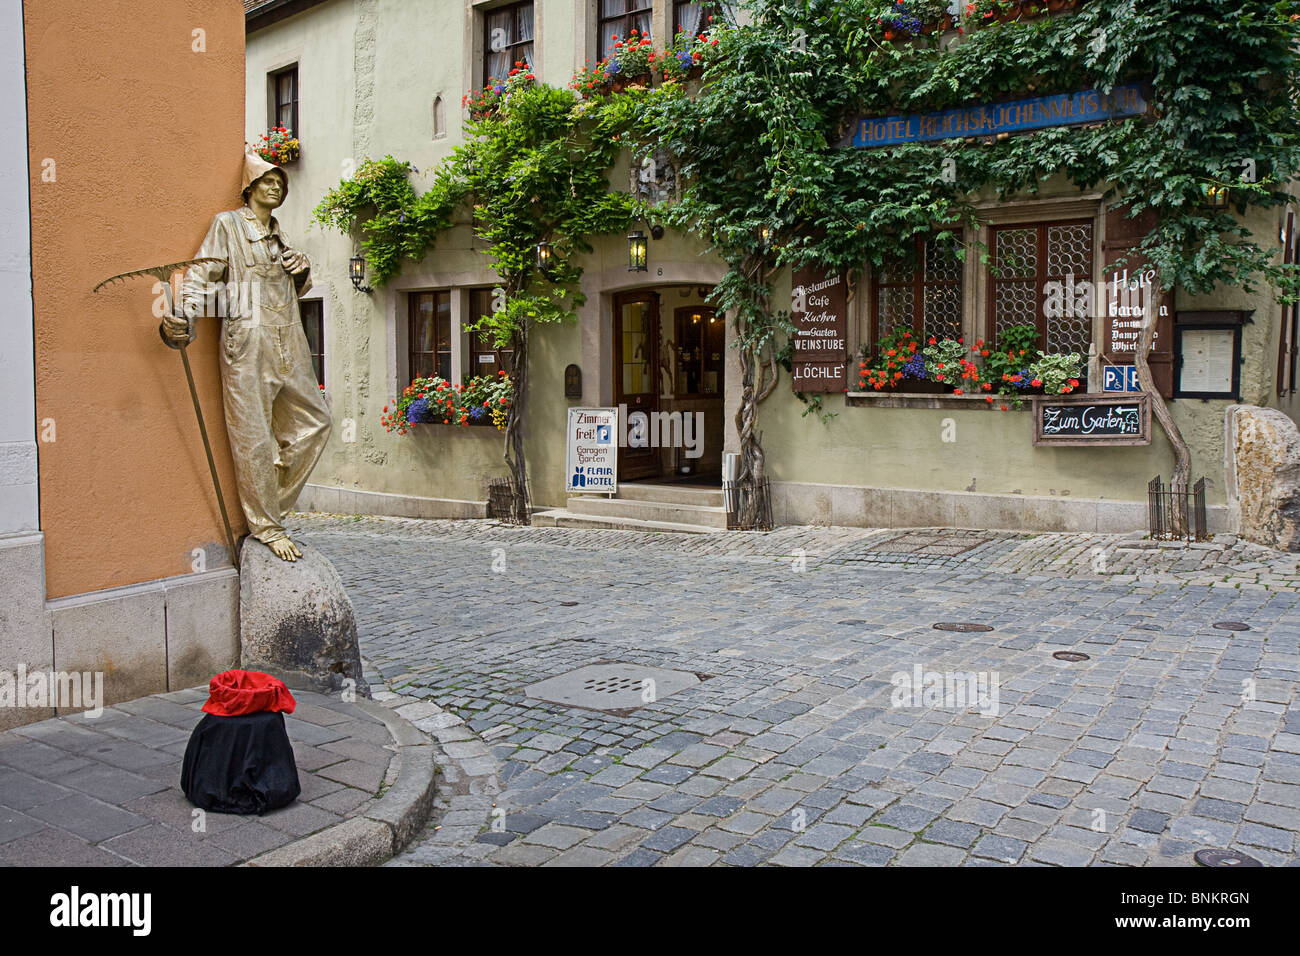 Streets of Rothenburg of der Tauber - Stock Image